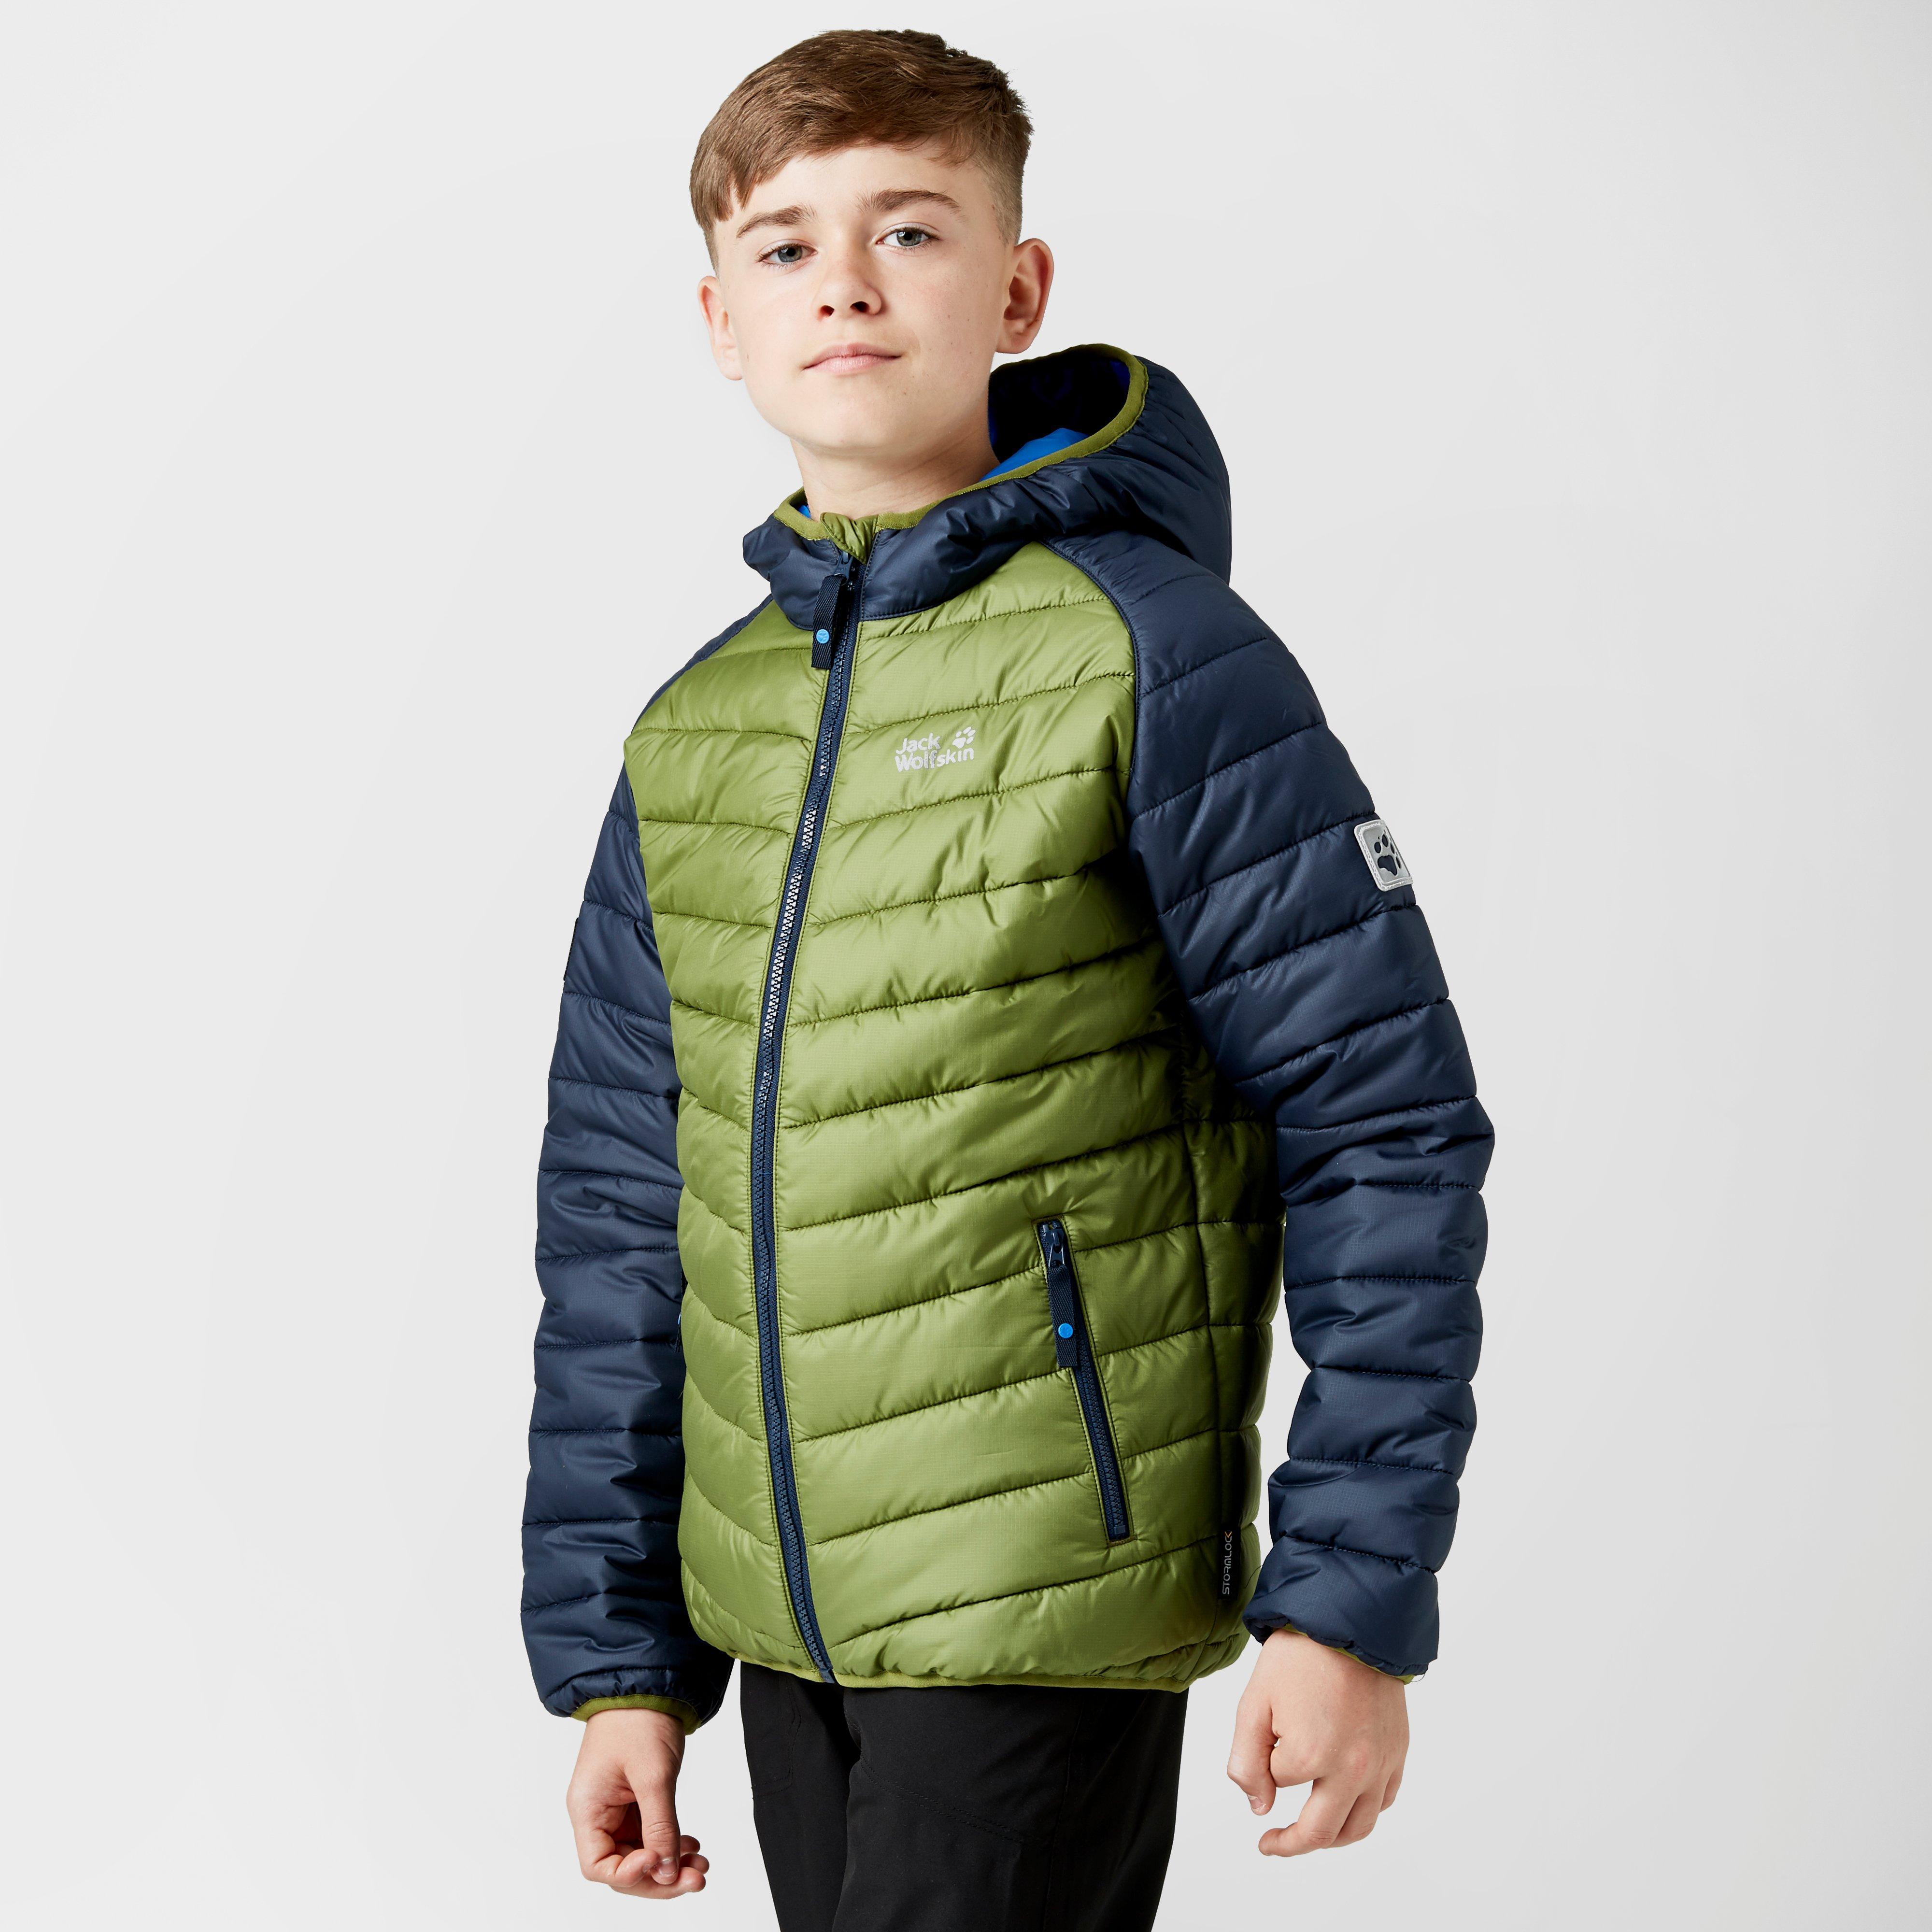 Boys Insulated Down Jackets | Blacks